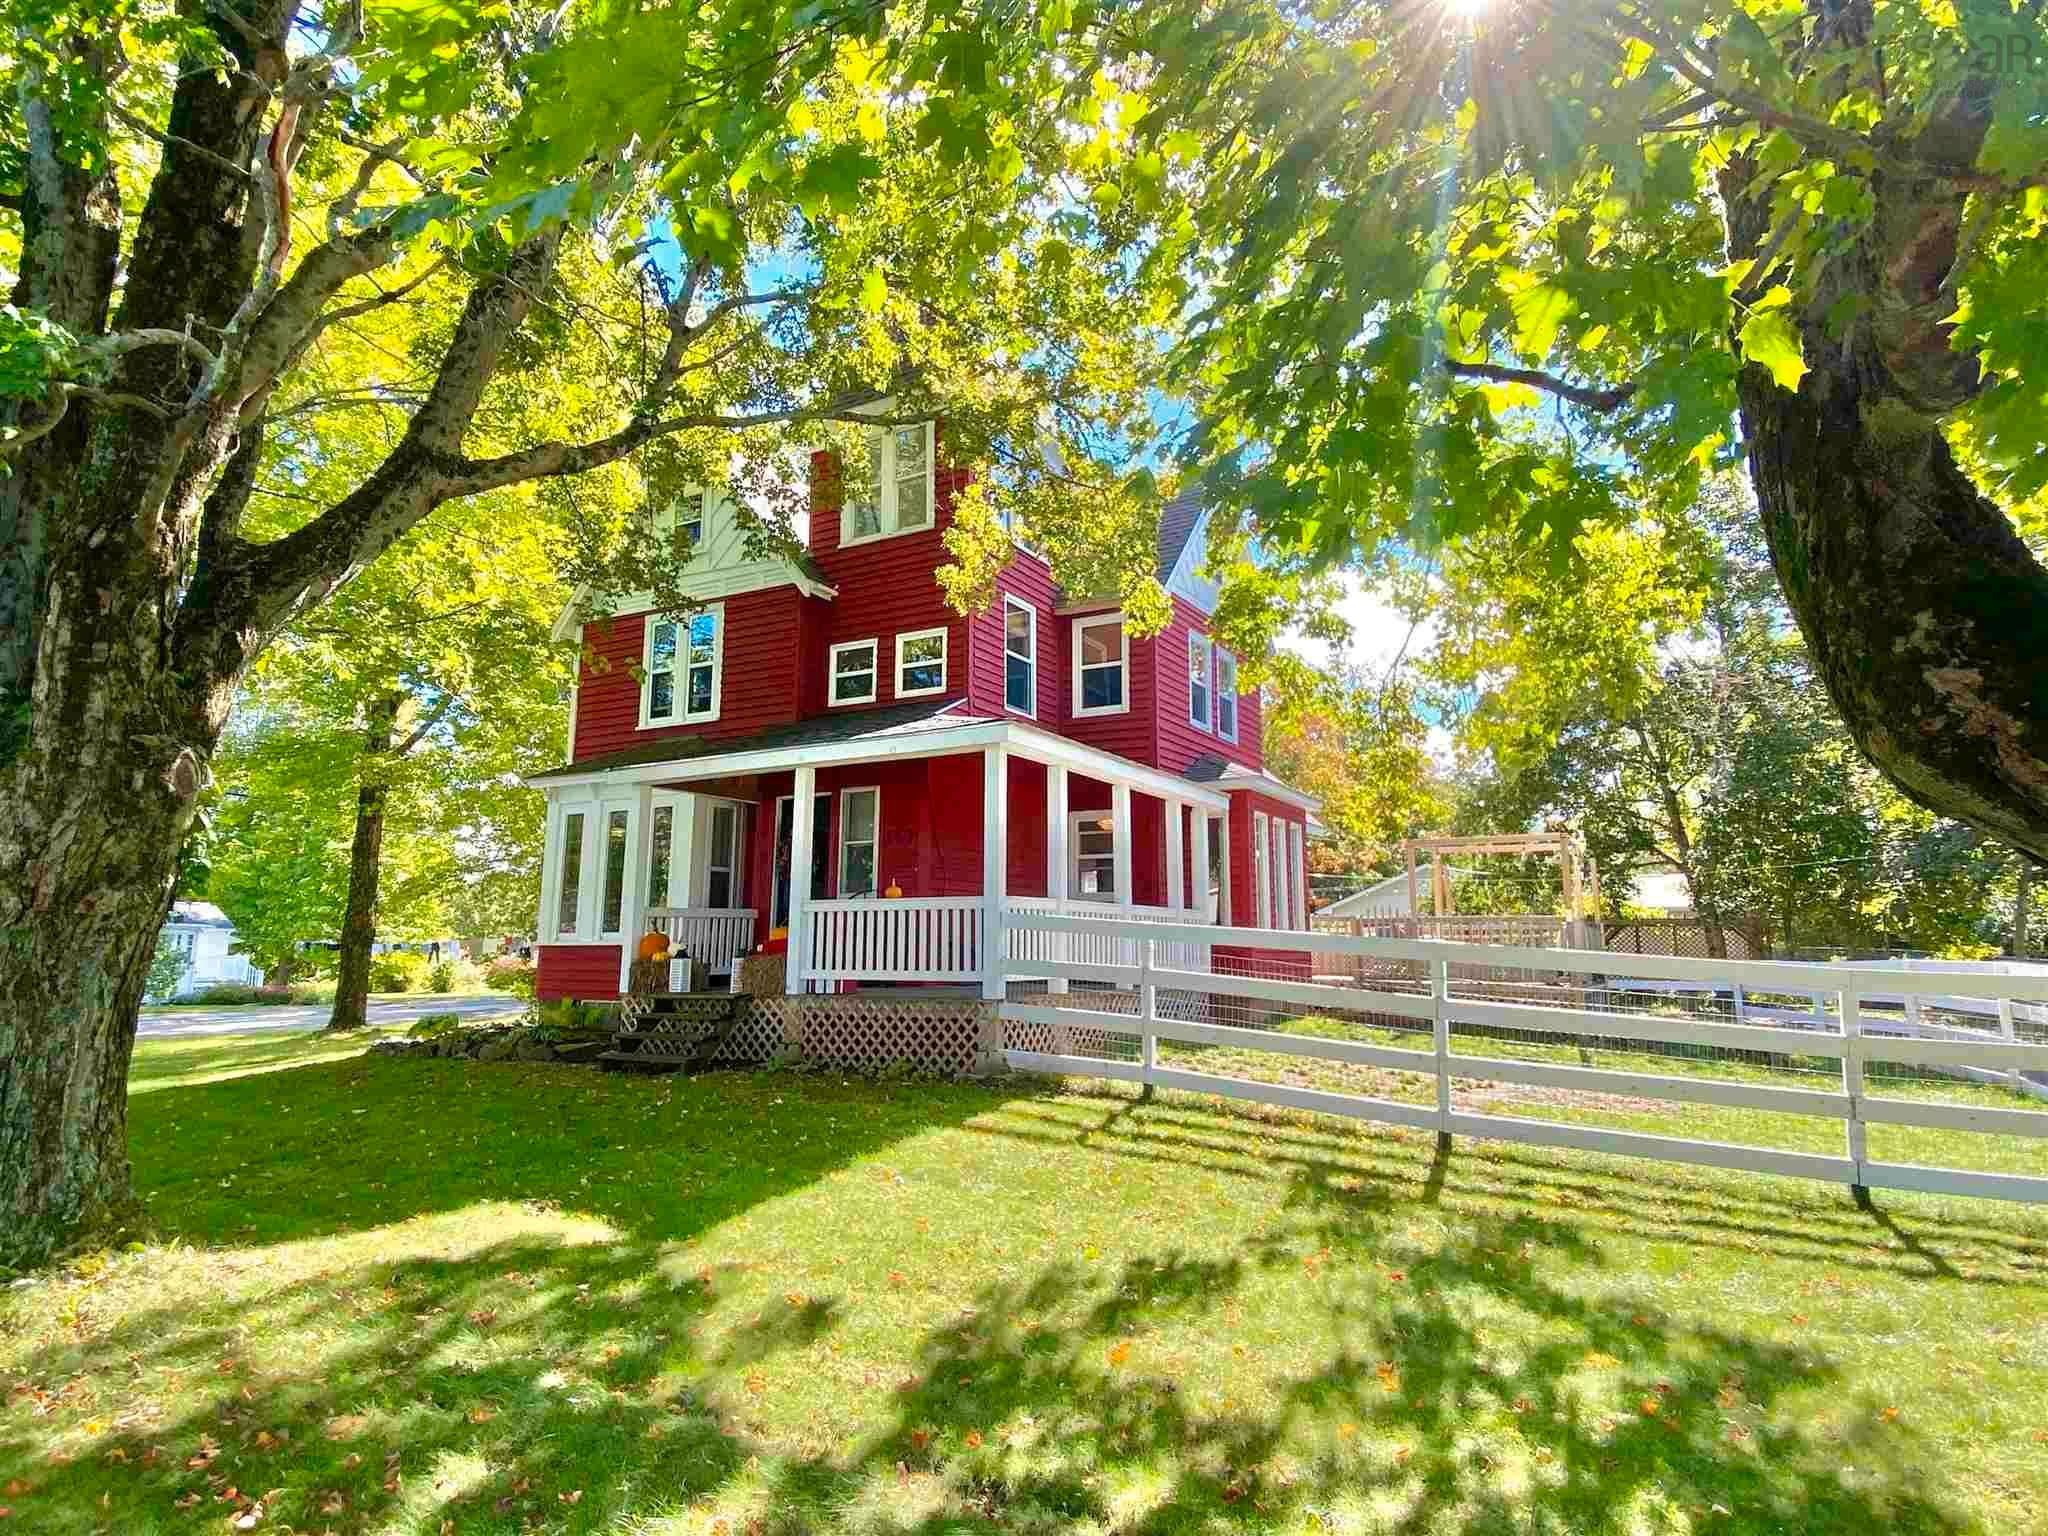 Main Photo: 157 COTTAGE Street in Berwick: 404-Kings County Residential for sale (Annapolis Valley)  : MLS®# 202125237